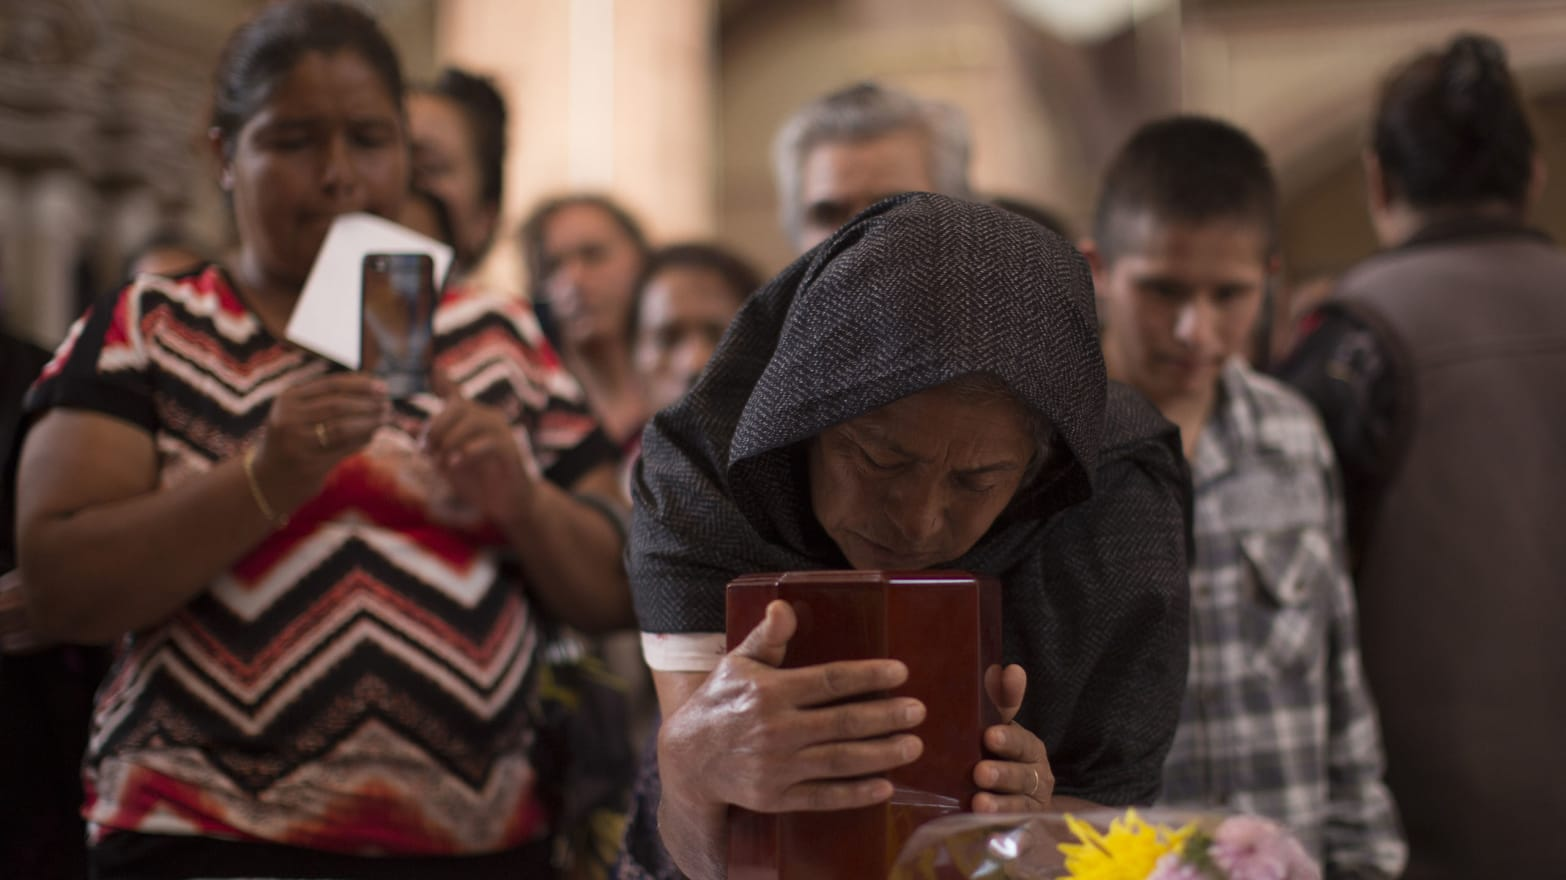 Mexico's Deadly for Priests, but the Church Is Complicit